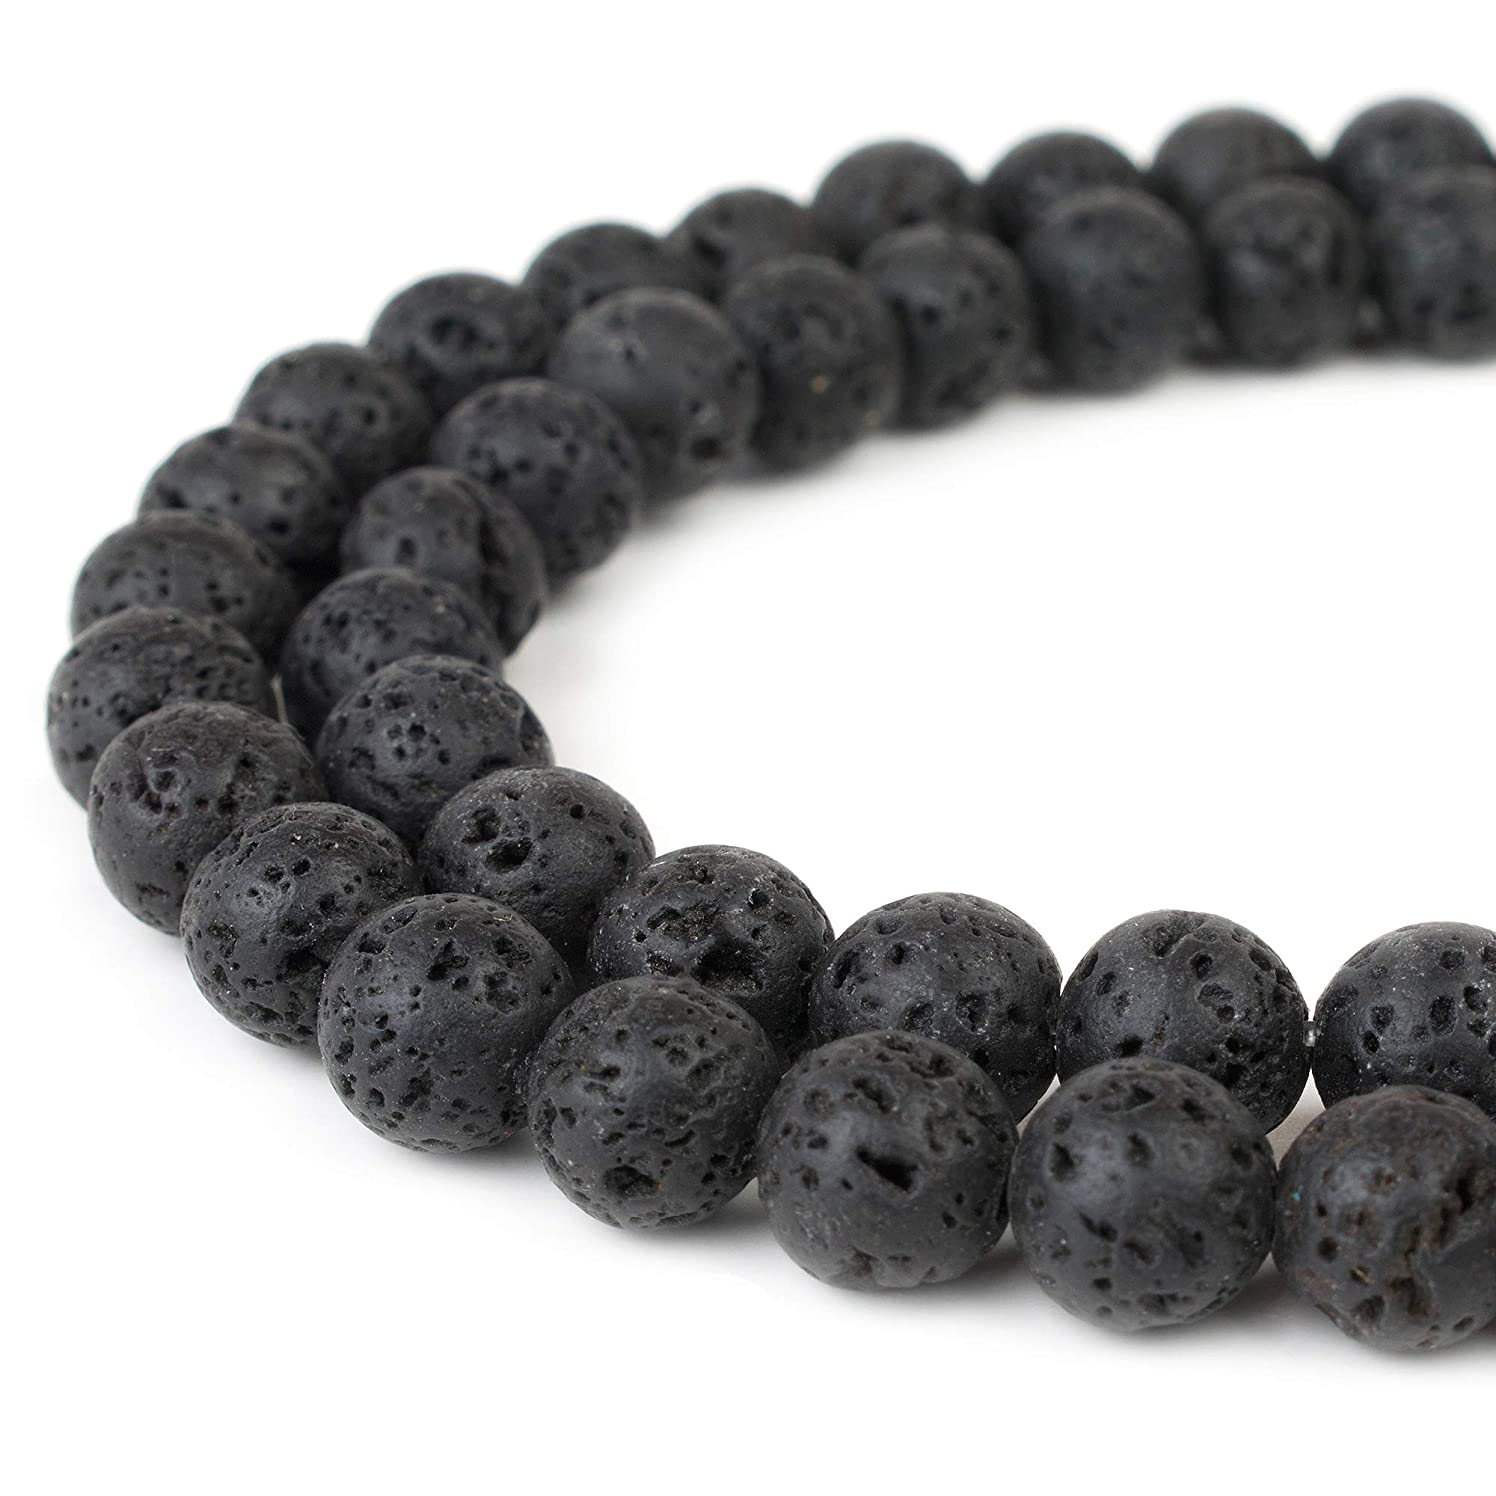 RVG 8mm Natural Black Lava Rock Beads Round Gemstone Volcanic Rock Gemstone Loose Stone Mala 15.5 in Strand For Jewelry Making (Approx 45-48 pcs)